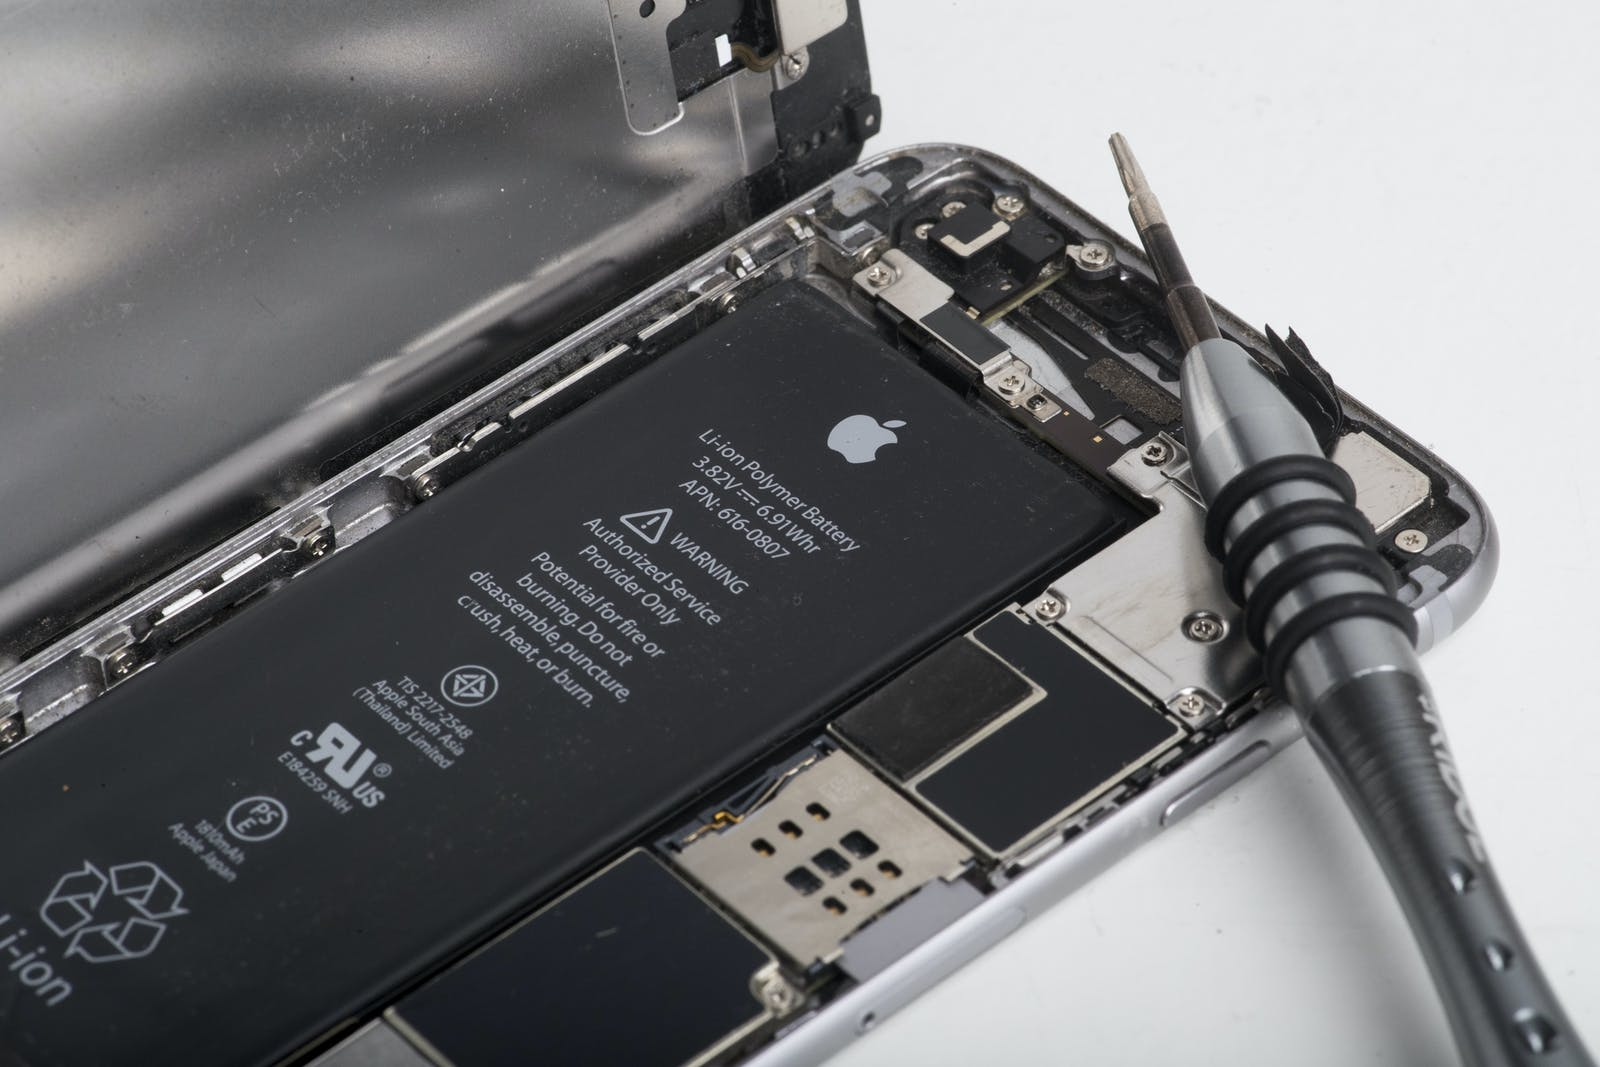 Inside an iPhone. Photo by Bloomberg